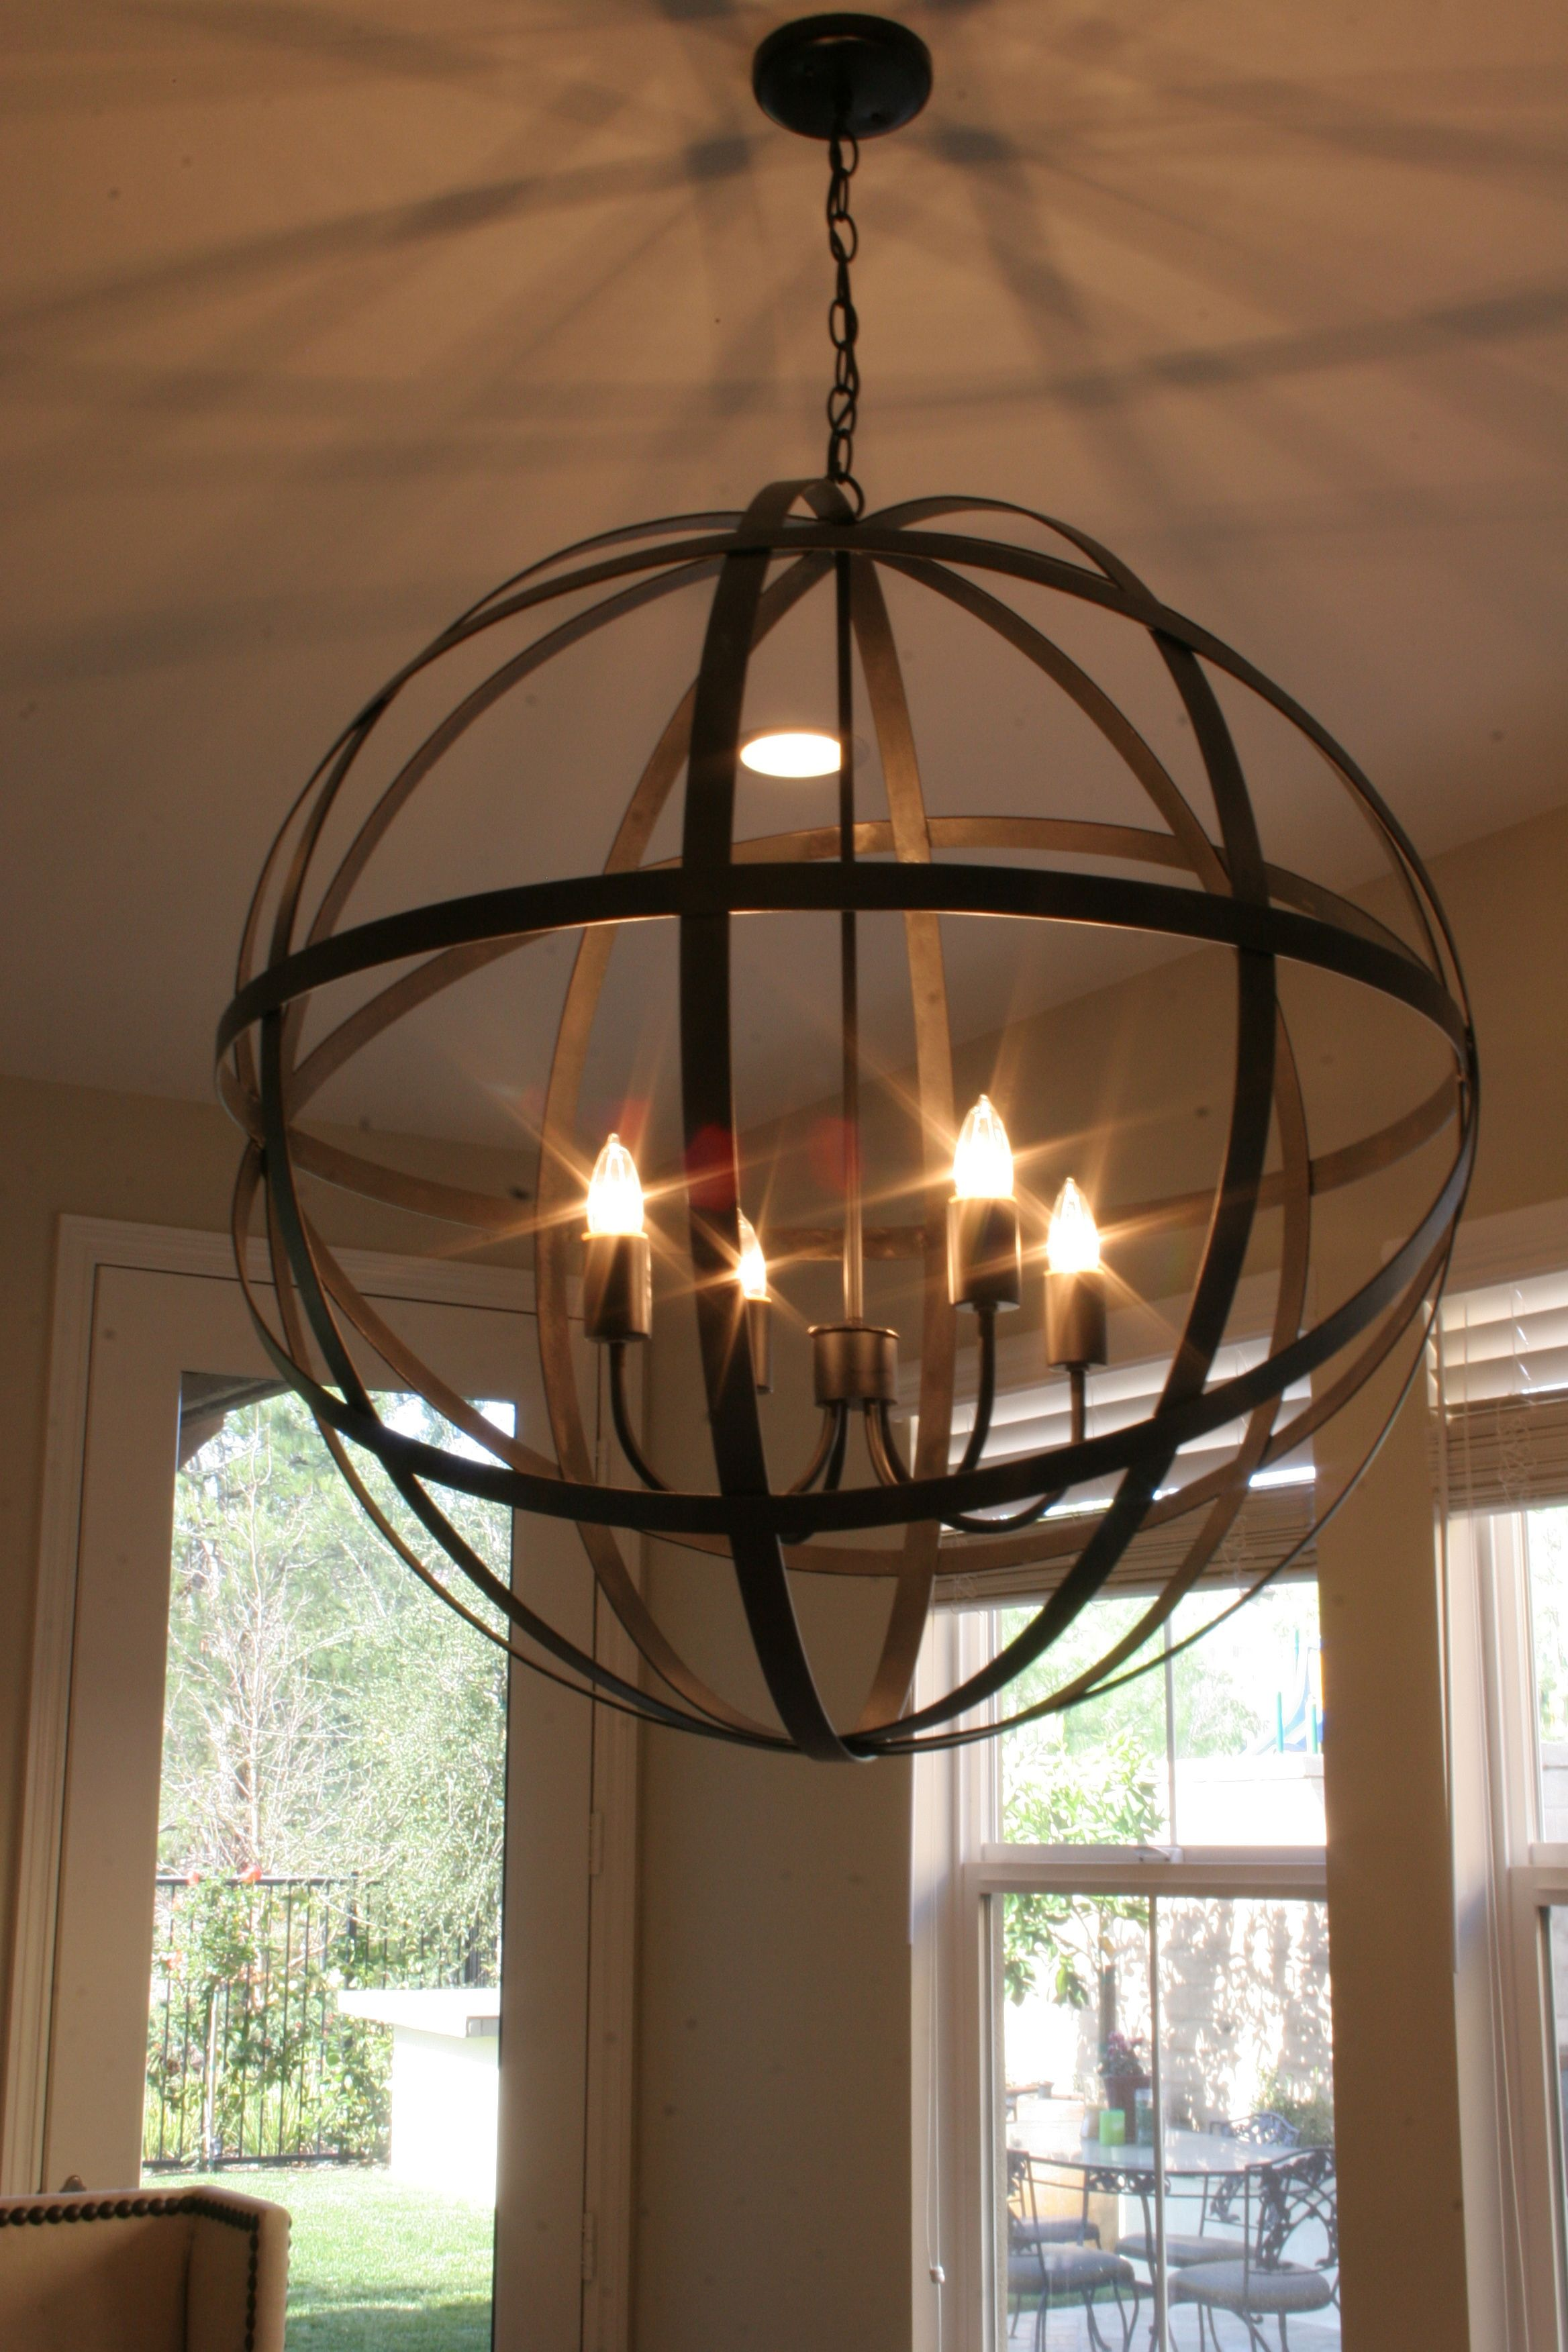 RESTORATION HARDWARE Chandelier